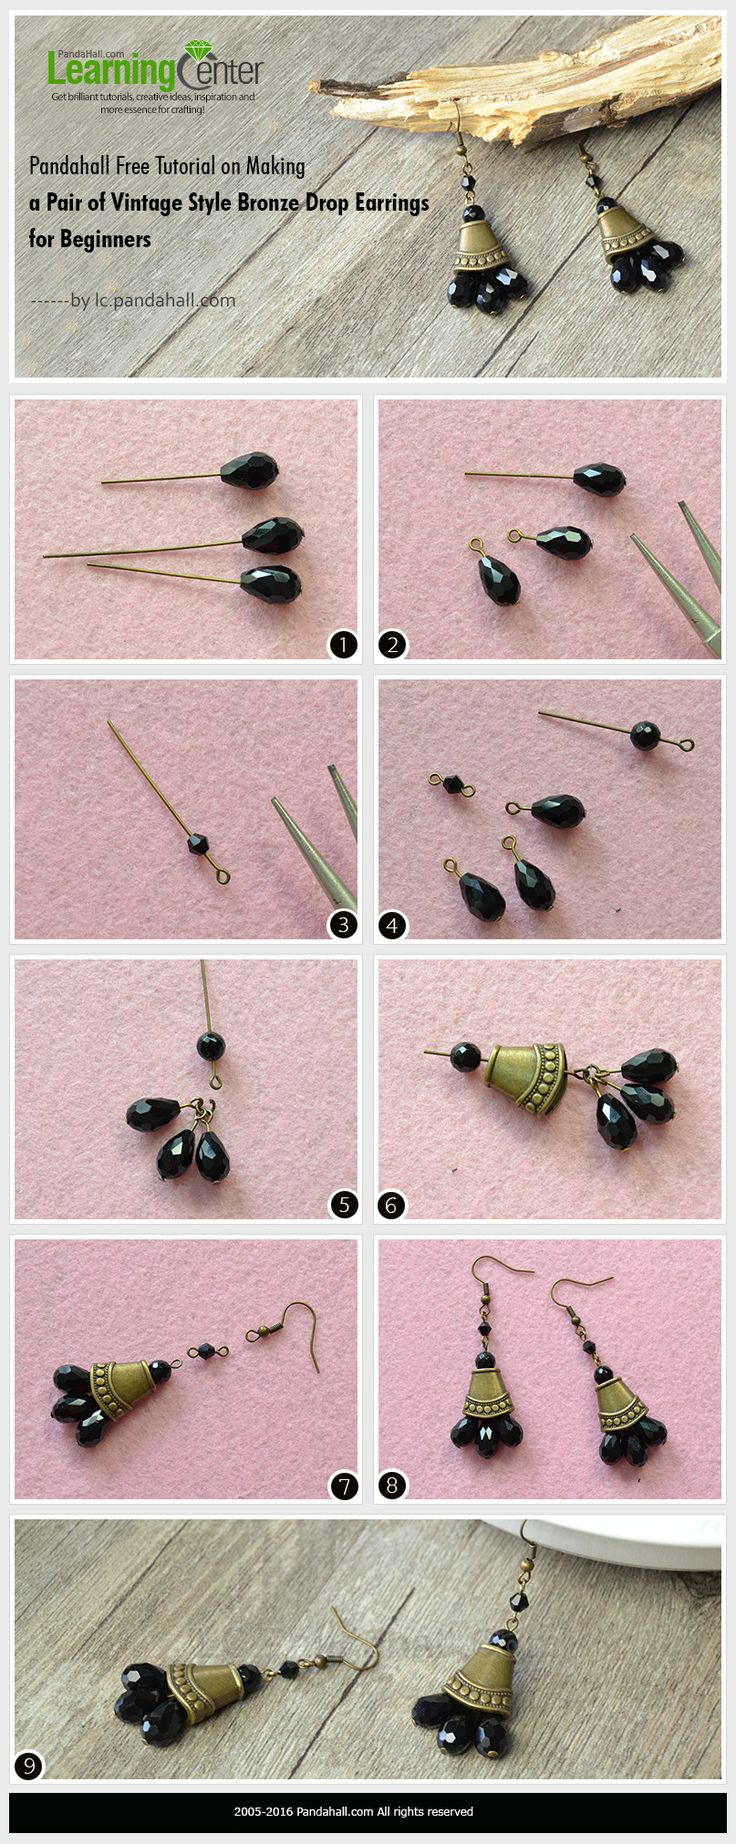 Pandahall Free Tutorial on Making a Pair of Vintage Style Bronze Drop Earrings for Beginners PandaHall Promotion use coupon code JunPINEN5OFF for 5% off for your orders, valid time from June 20 to June 27. #earrings #dangleearrings #pandahall